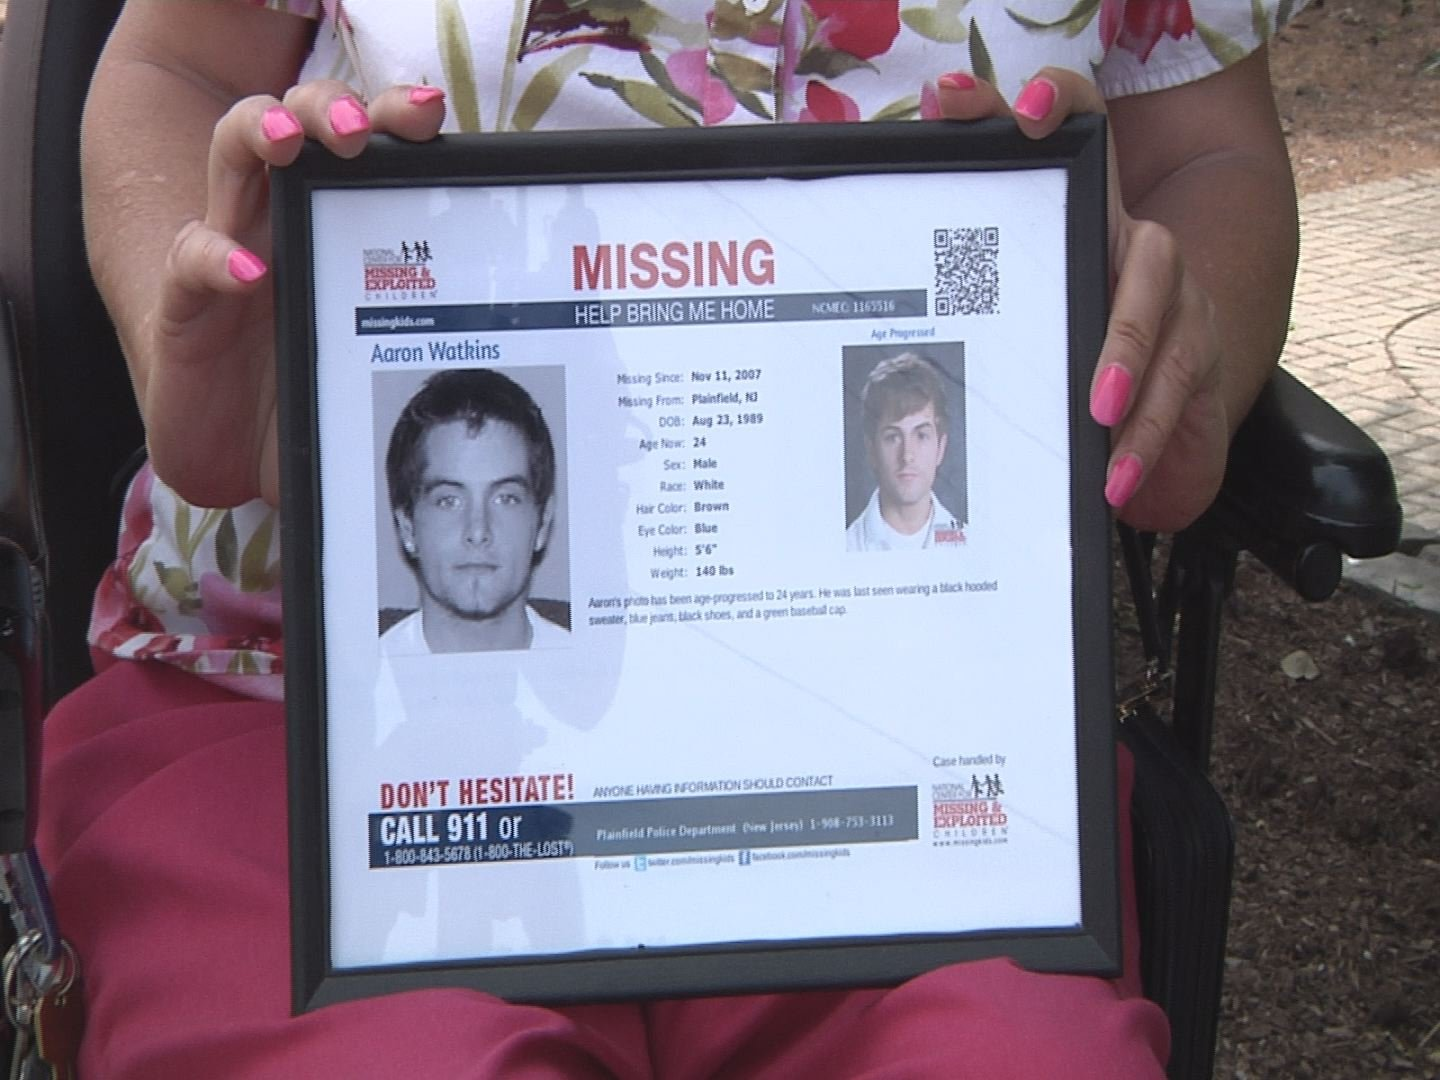 Aaron Watkins was reported missing back in 2007.